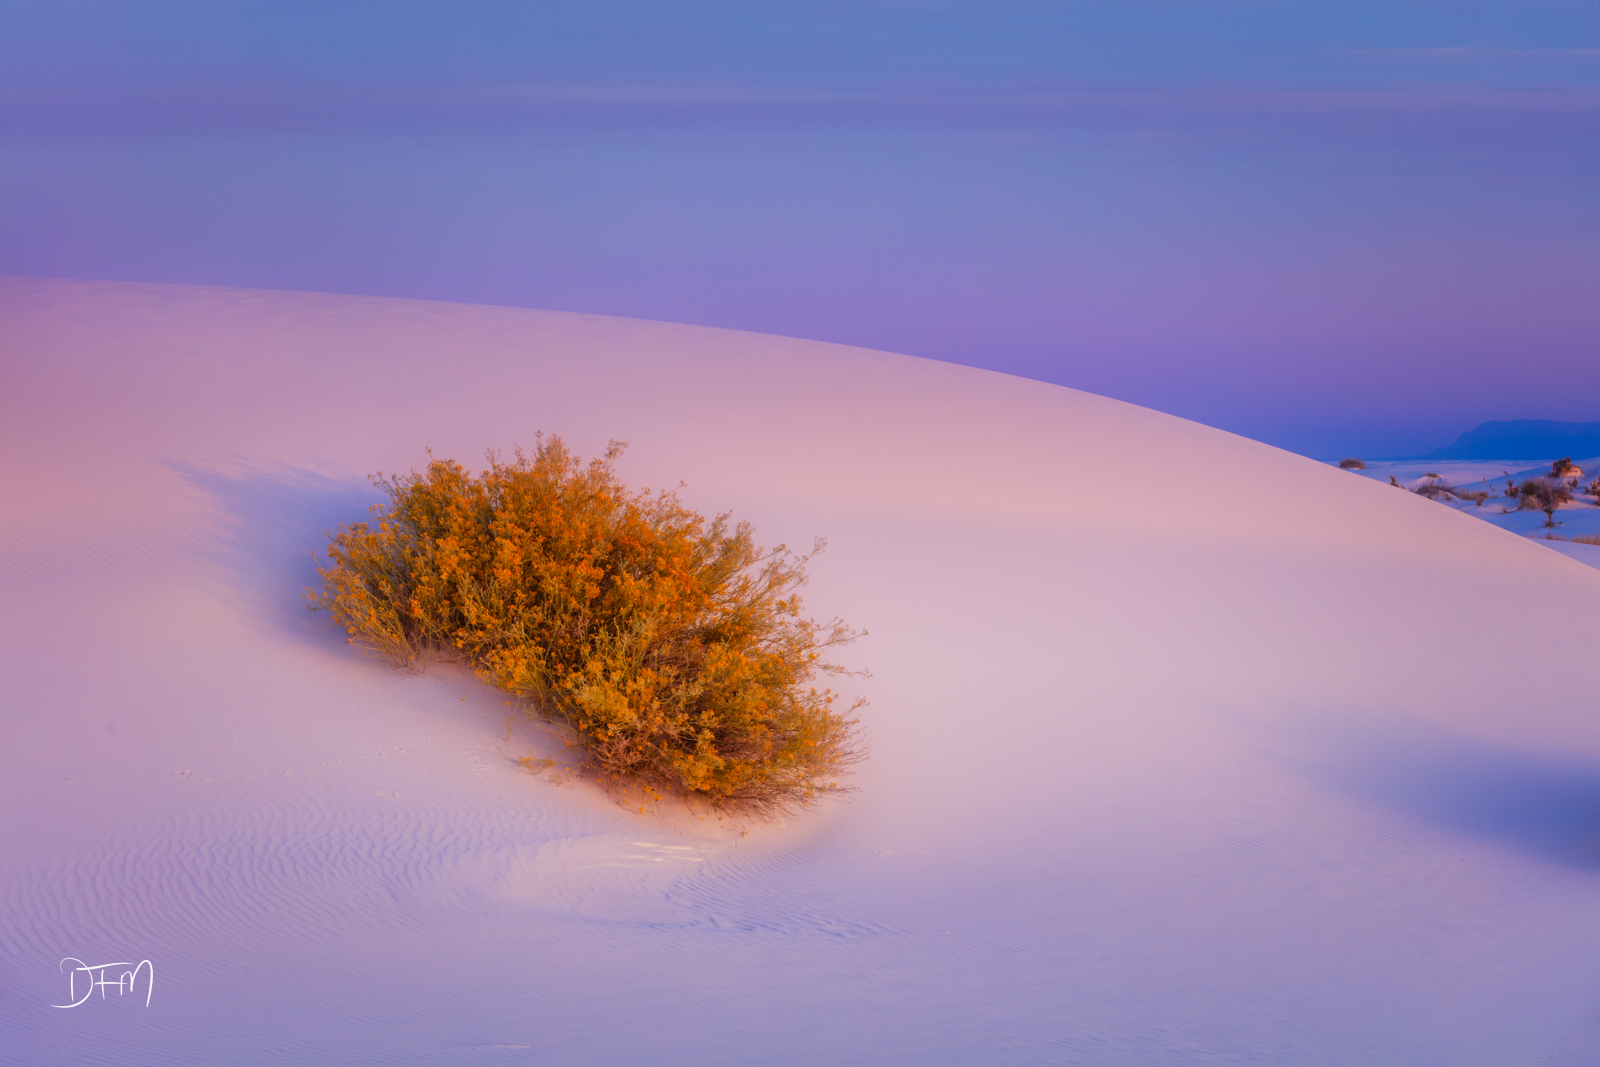 A loneChamisa Shrub growing in theGypsum Dune of the White Sands National Park, New Mexico. This special mix of early...